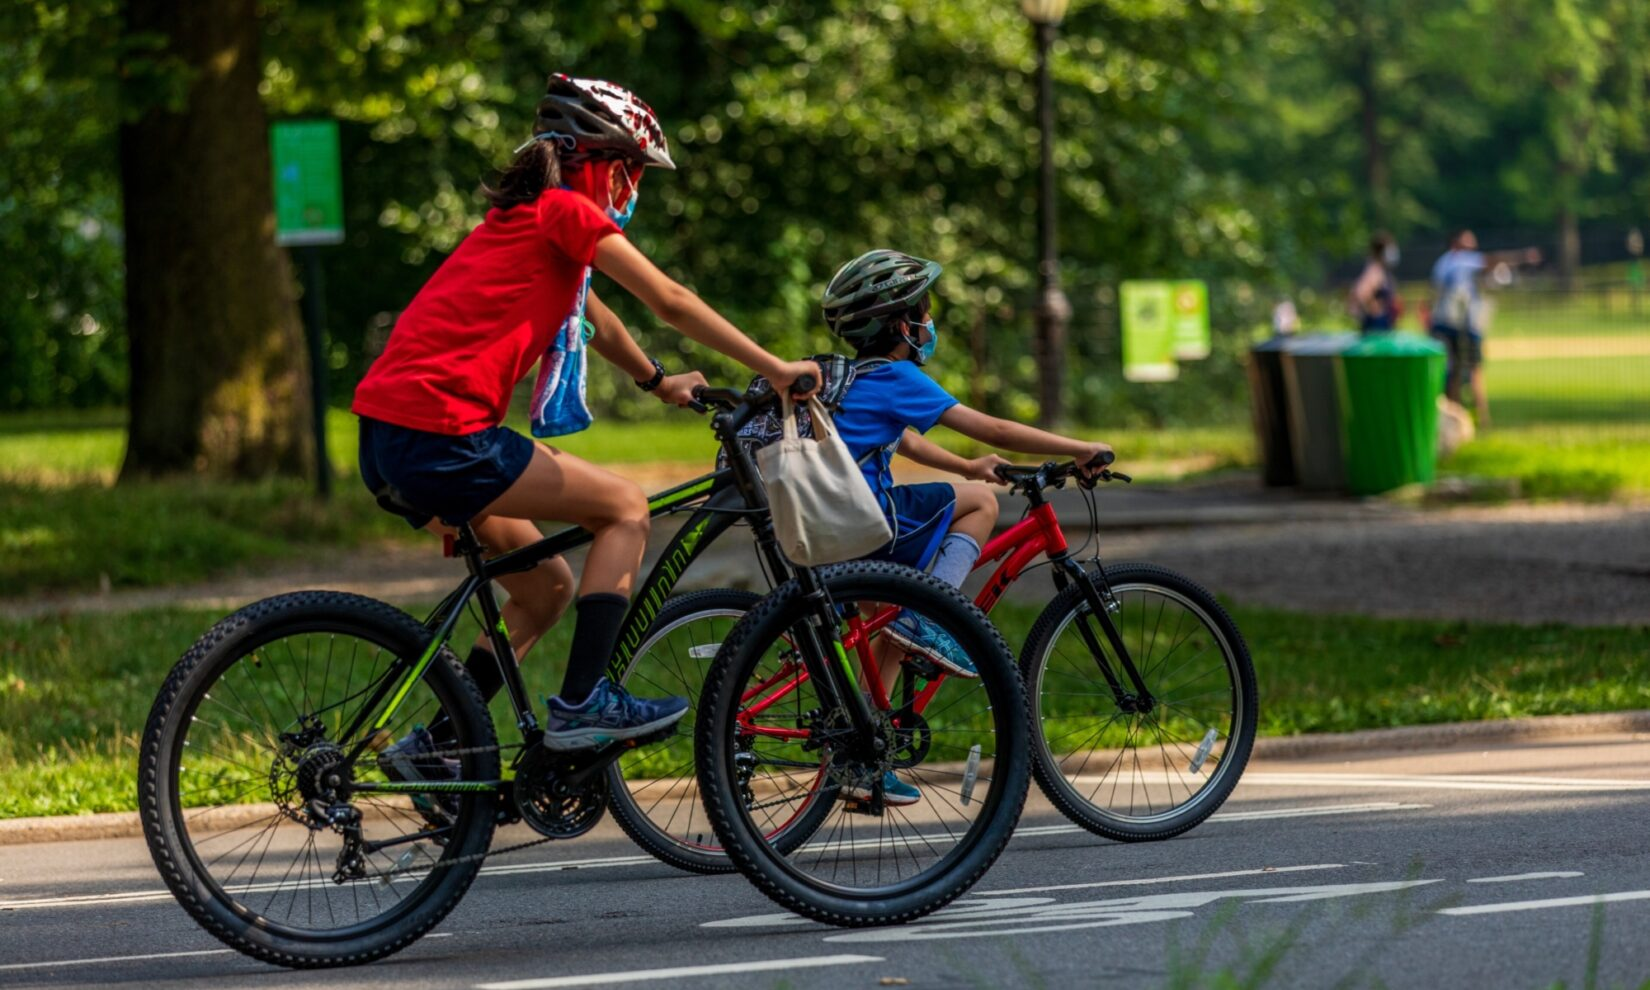 Two kids in helmets riding mountain bikes on a Park roadway